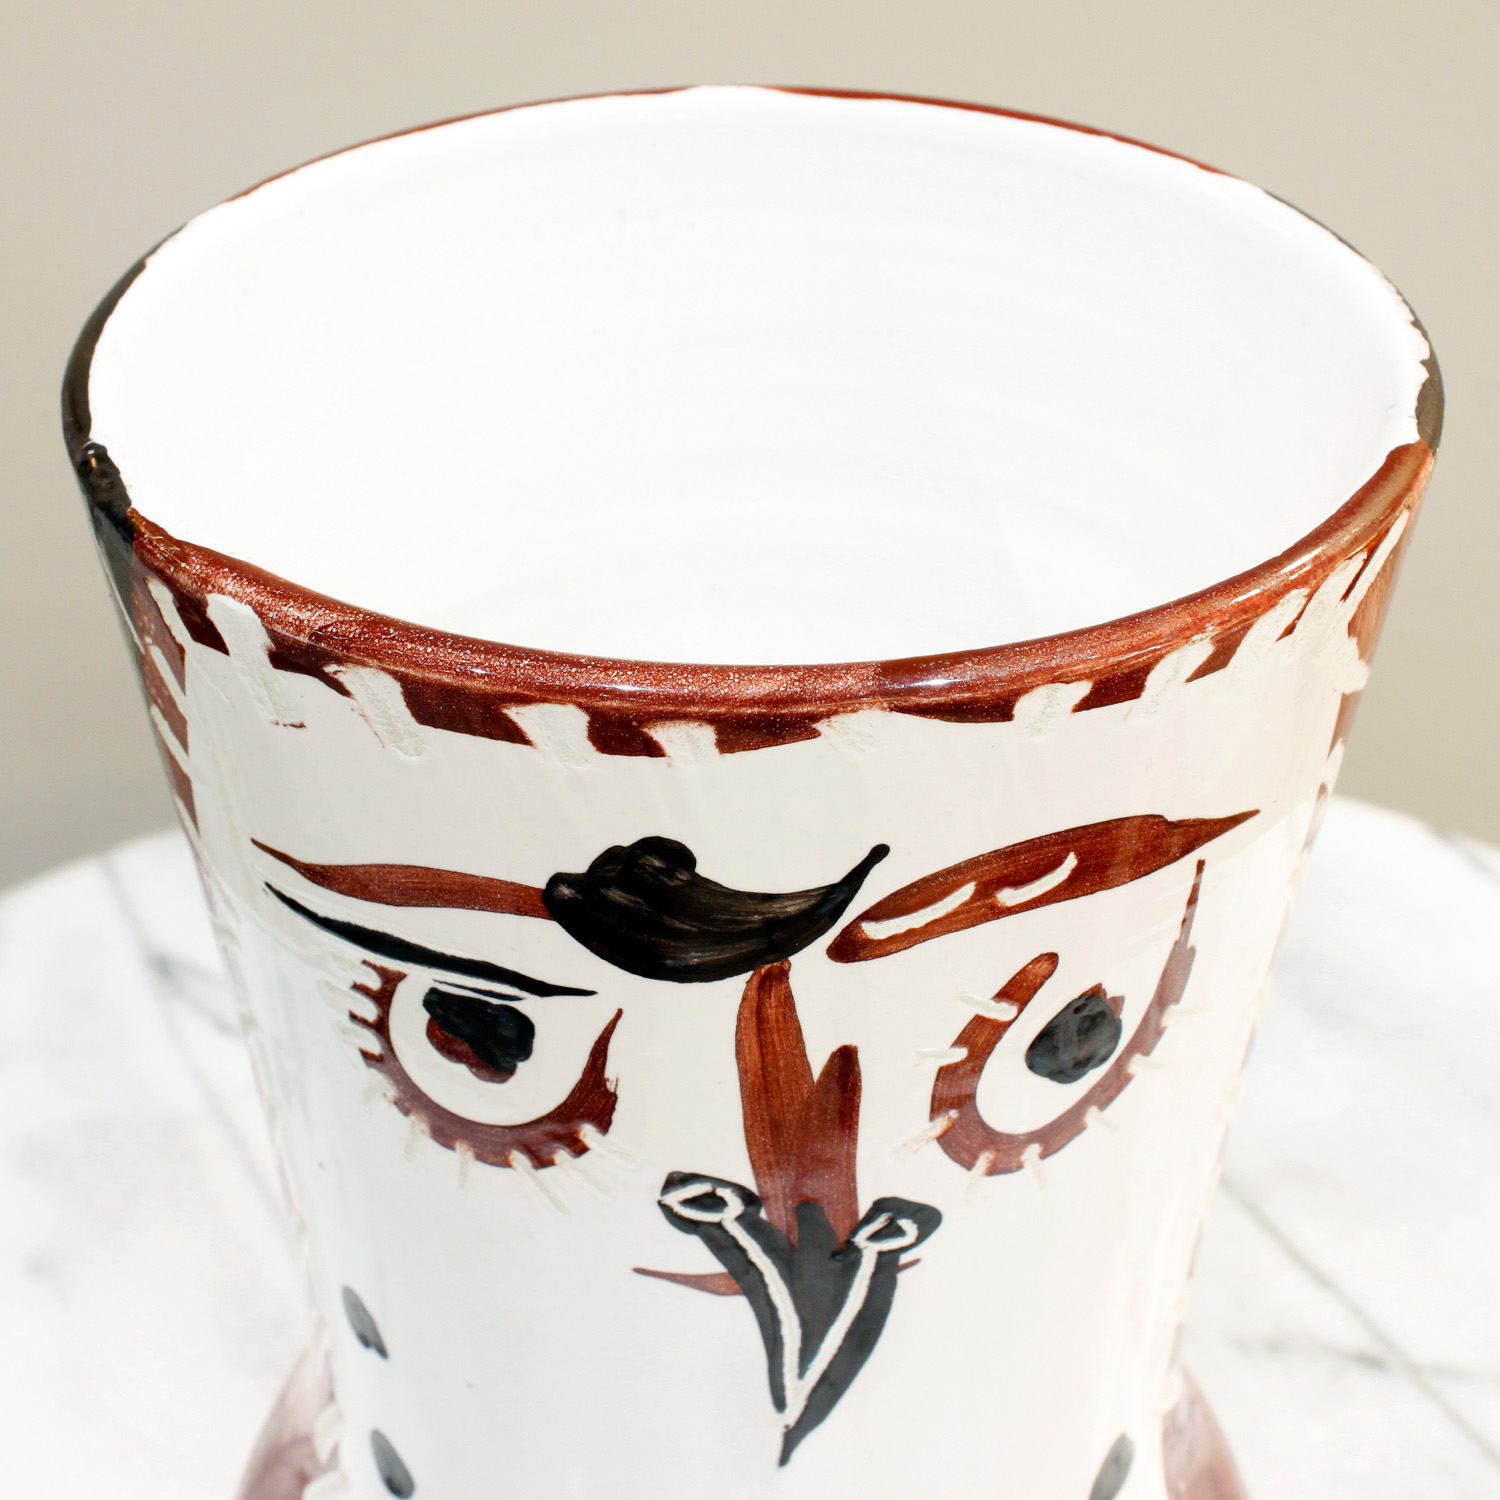 Picasso 200 lrg wood owl ceramic42 top.jpg